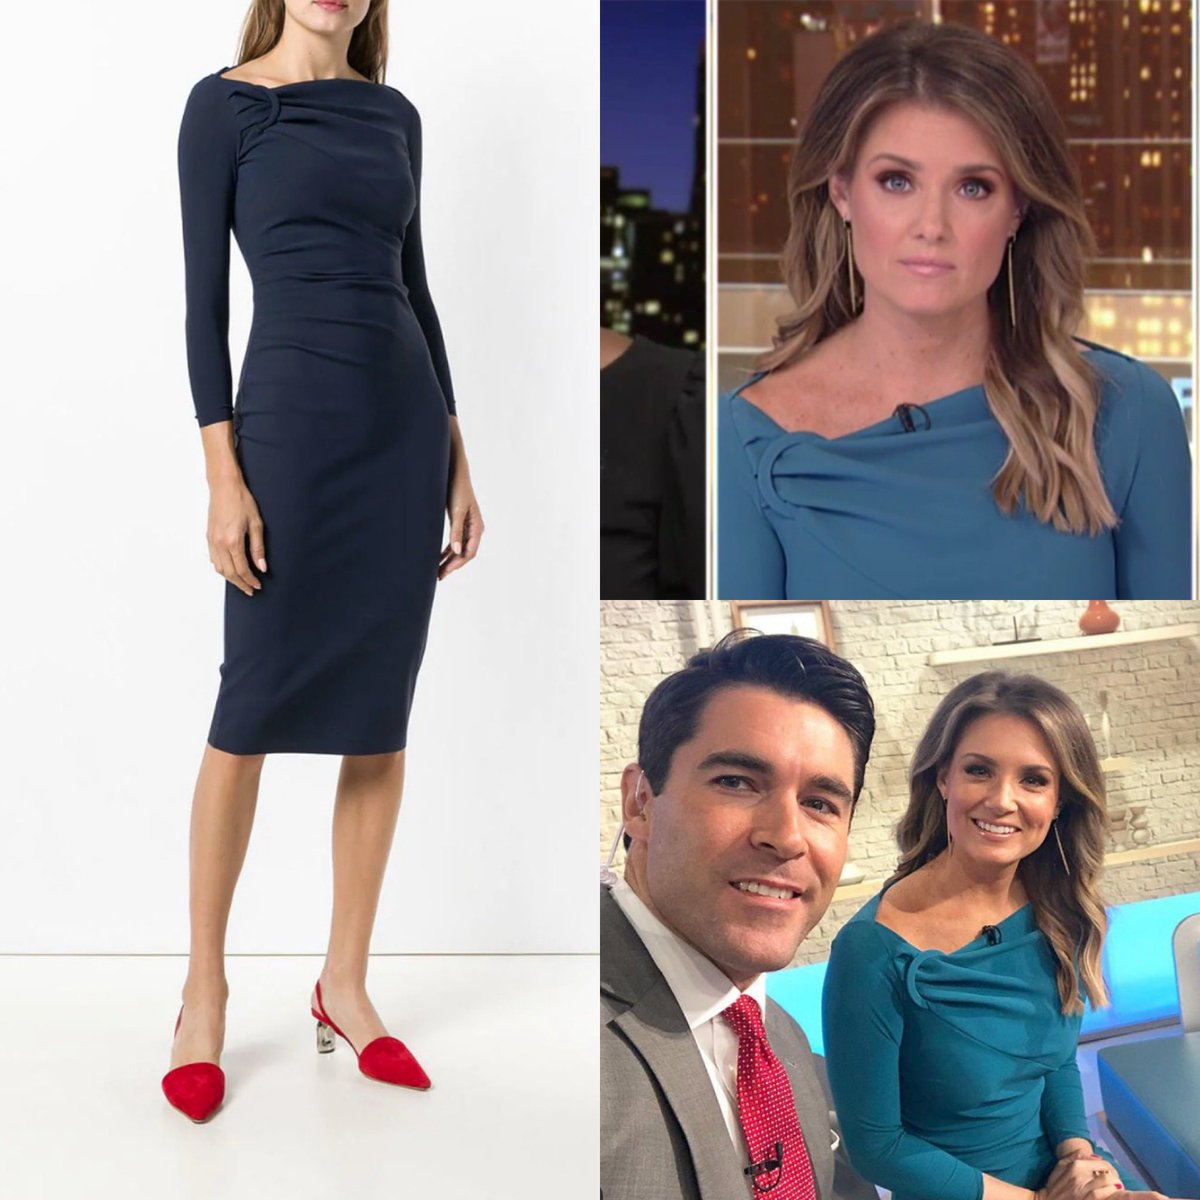 Jillian Mele wore a Chiara Boni 'Delbar' Asymmetric Ring Neck Sheath dress today on #FoxandFriends - the dress is mostly sold out, but a few sizes are still on sale at Bergdorfs.  #jillianmele #foxnews #foxnewsfashion  https://www.instagram.com/p/B38Aum8gmf4/?igshid=jxl48x73qbrp …pic.twitter.com/mYAooyXqDo